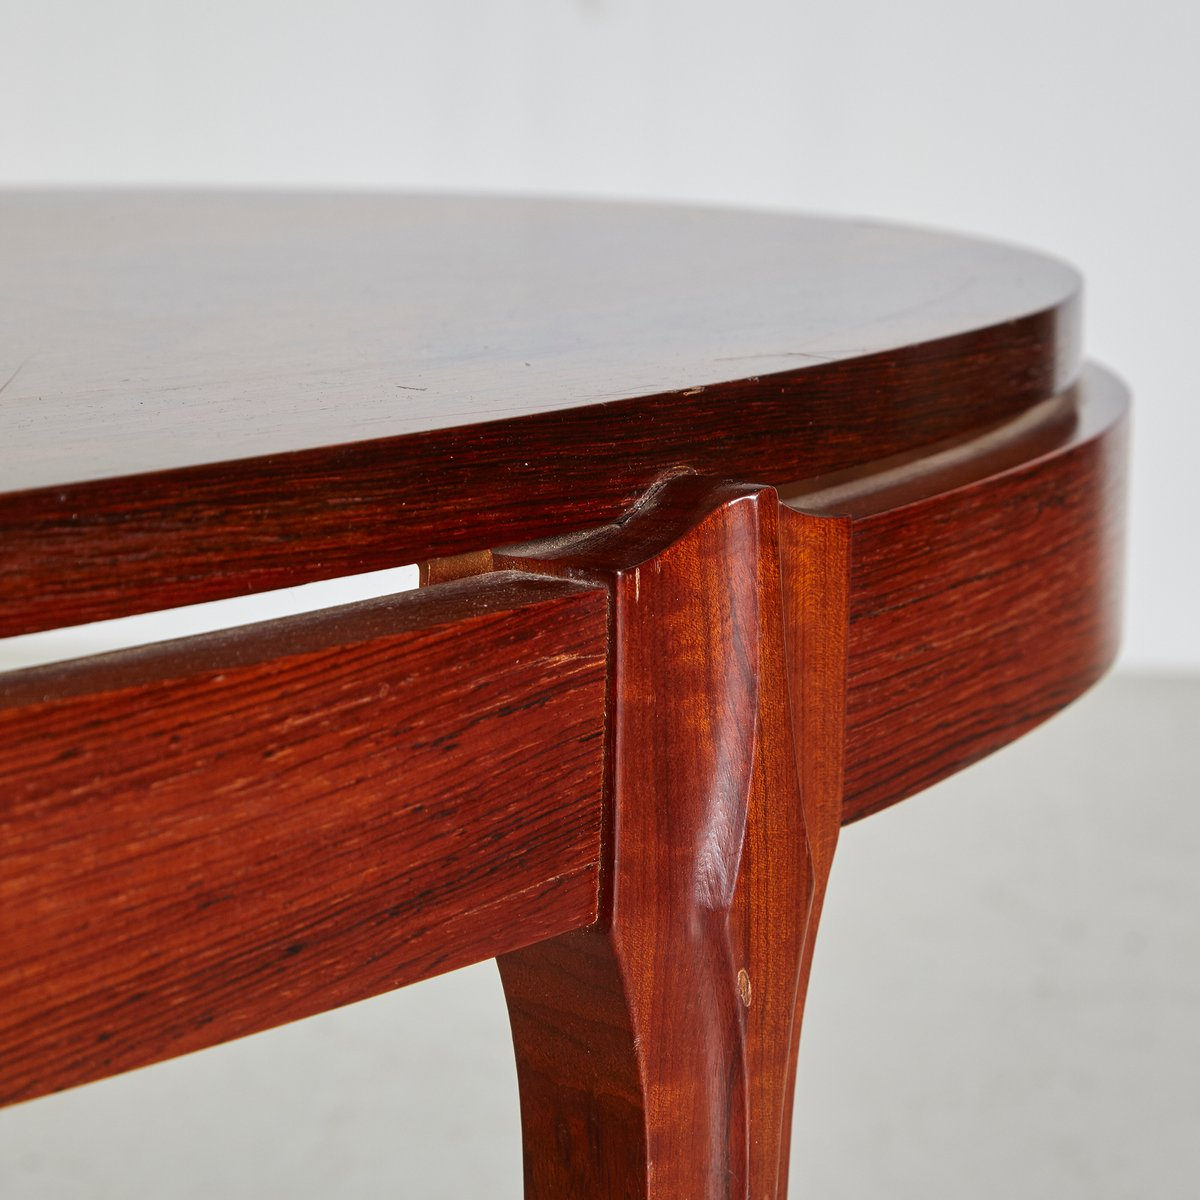 Vintage Oval Coffee Tables: Vintage Rosewood Oval Coffee Table, 1960s For Sale At Pamono